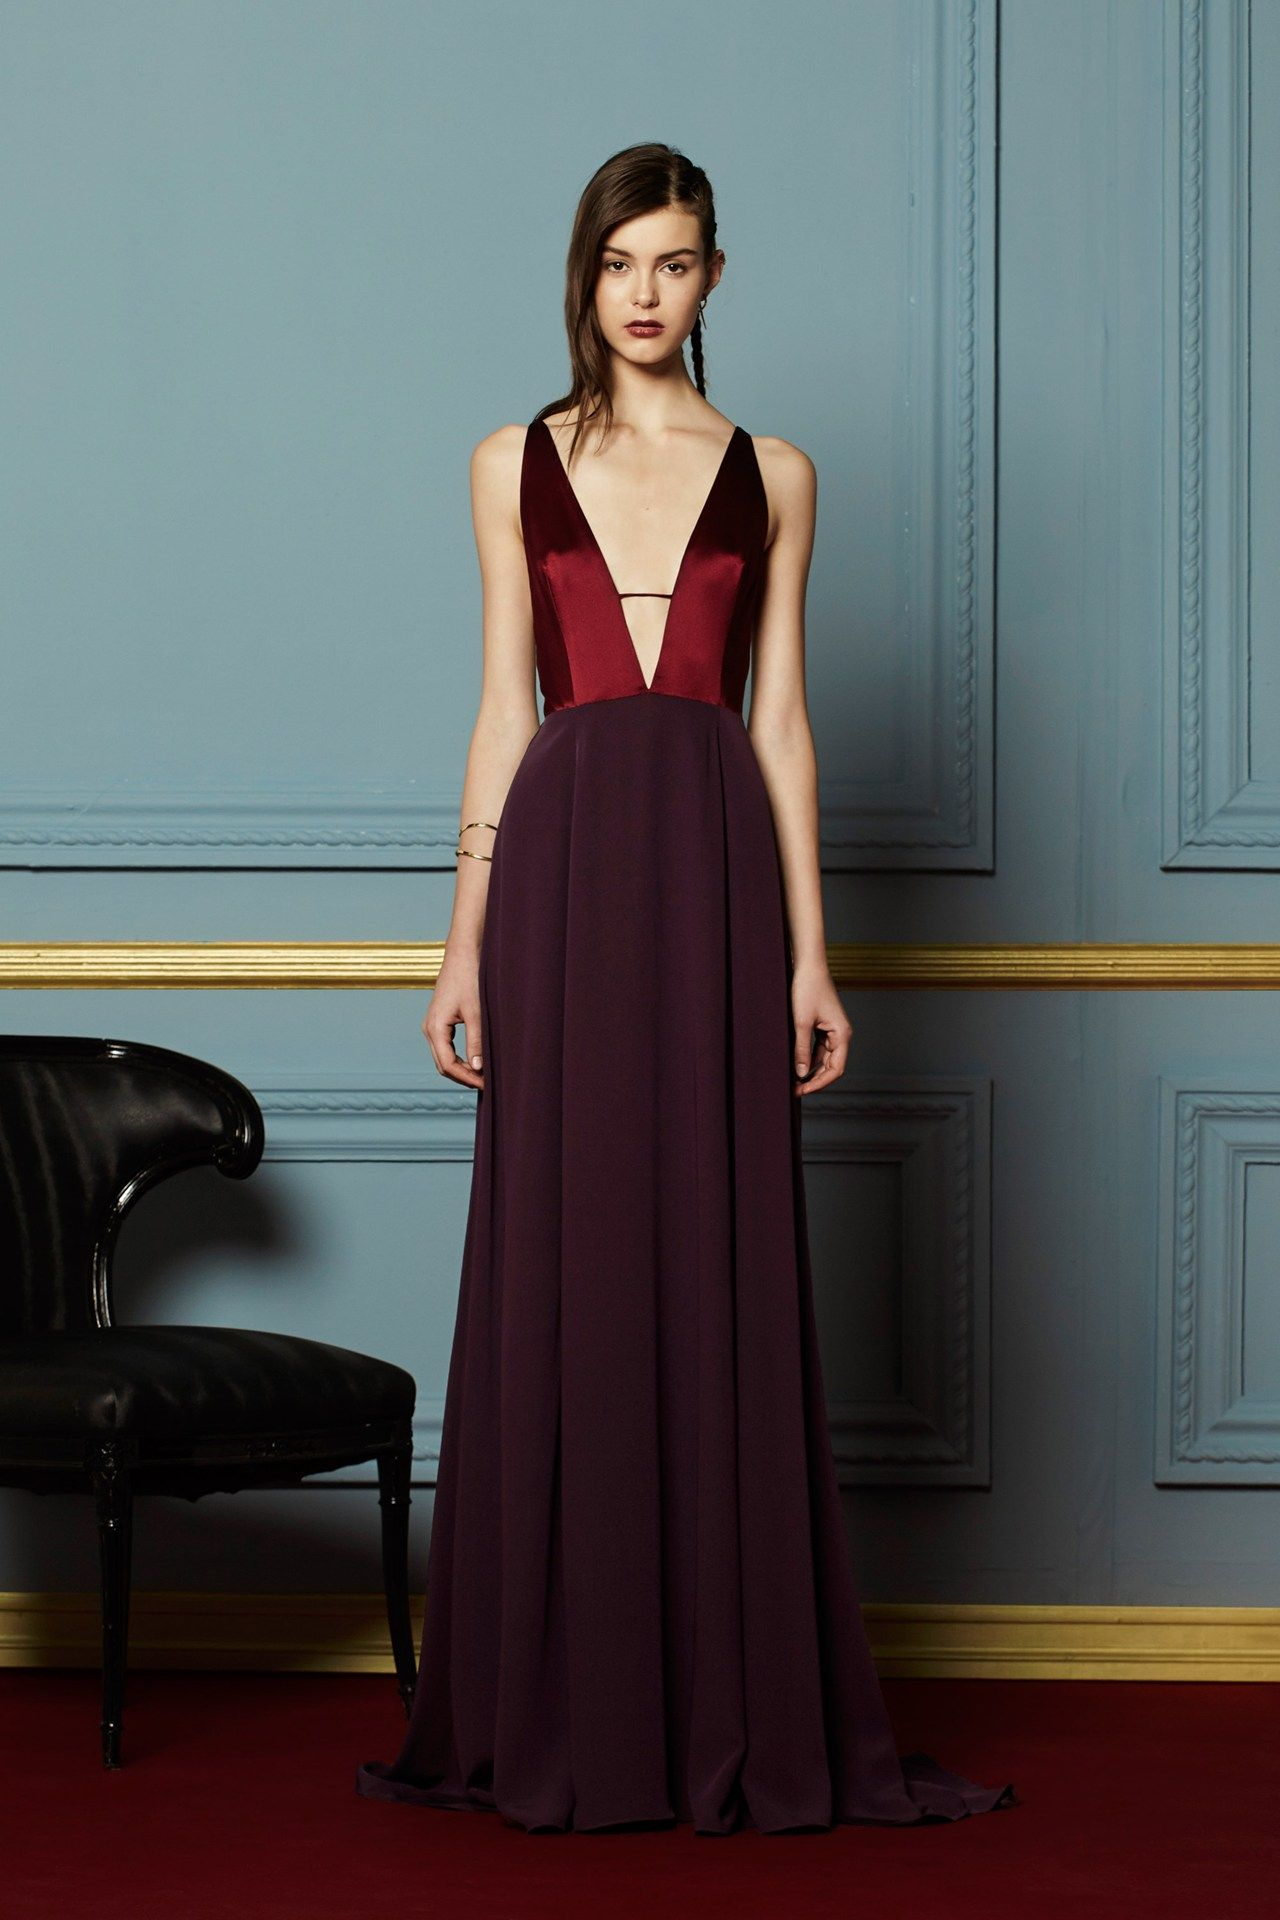 See the hellessy autumnwinter collection dream closet